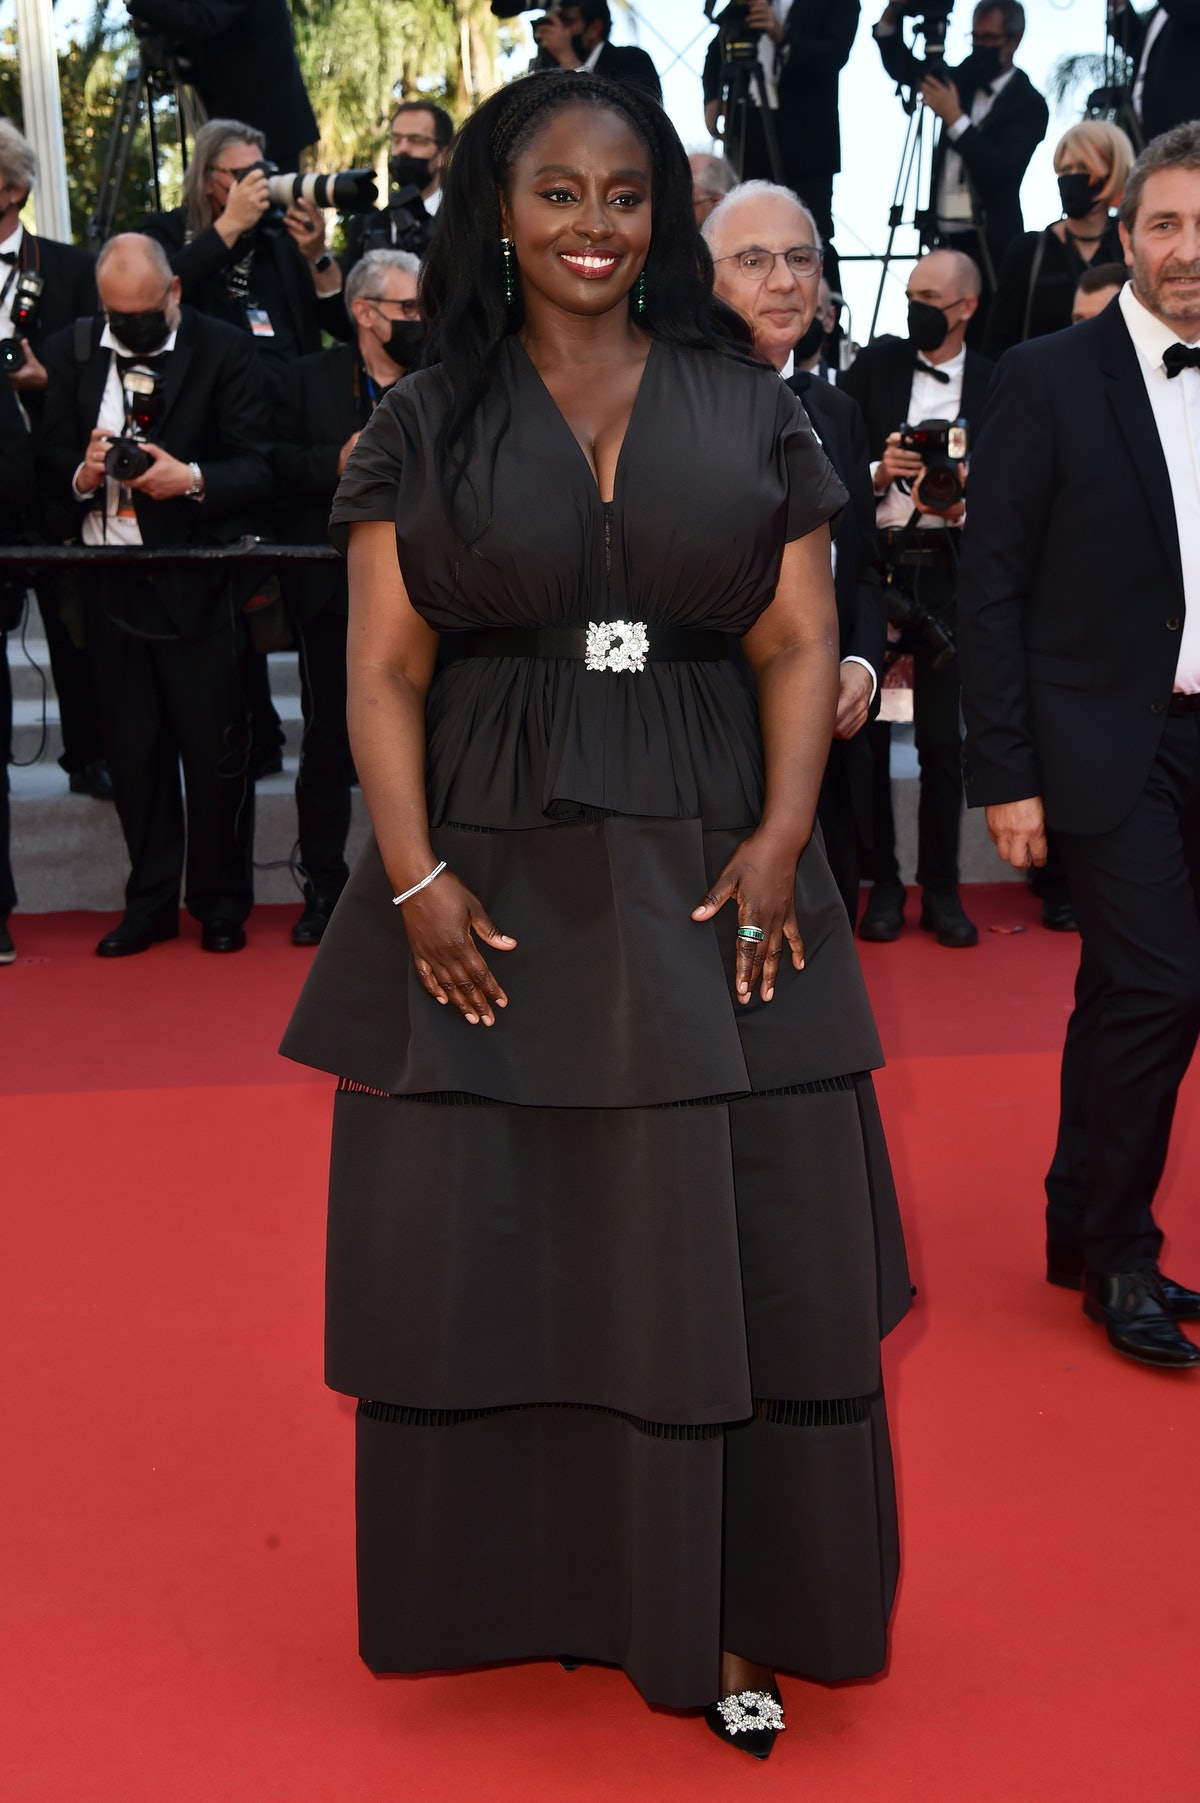 """CANNES, FRANCE - JULY 09: Aissa Maiga attends the """"Benedetta"""" screening during the 74th annual Cannes Film Festival on July 09, 2021 in Cannes, France. (Photo by Dominique Charriau/WireImage)"""